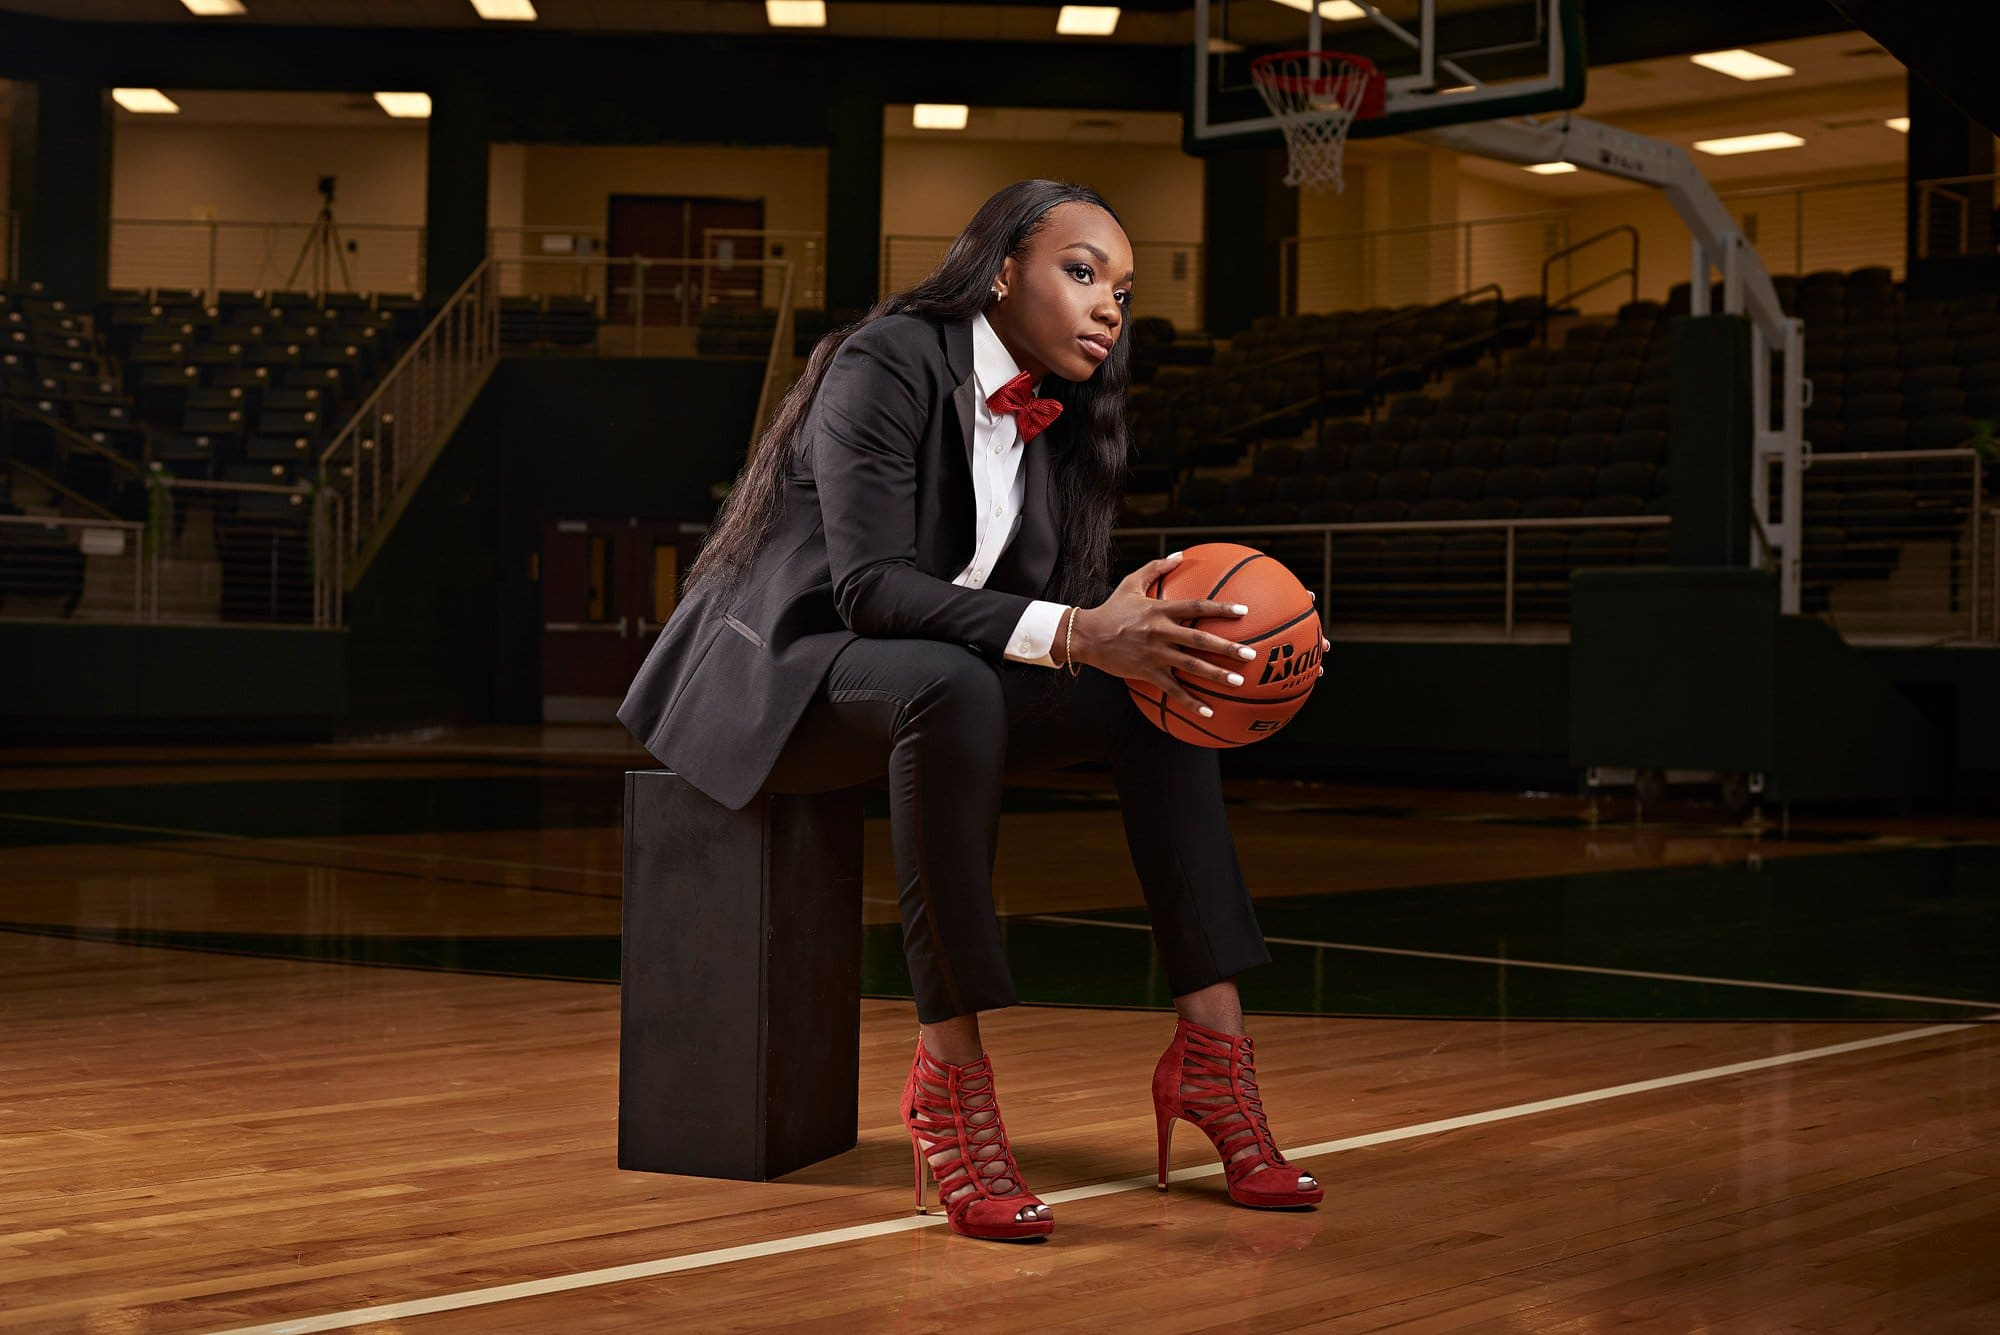 Prosper Girls senior basketball player Jordyn on basketball court in tuxedo at prosper high school